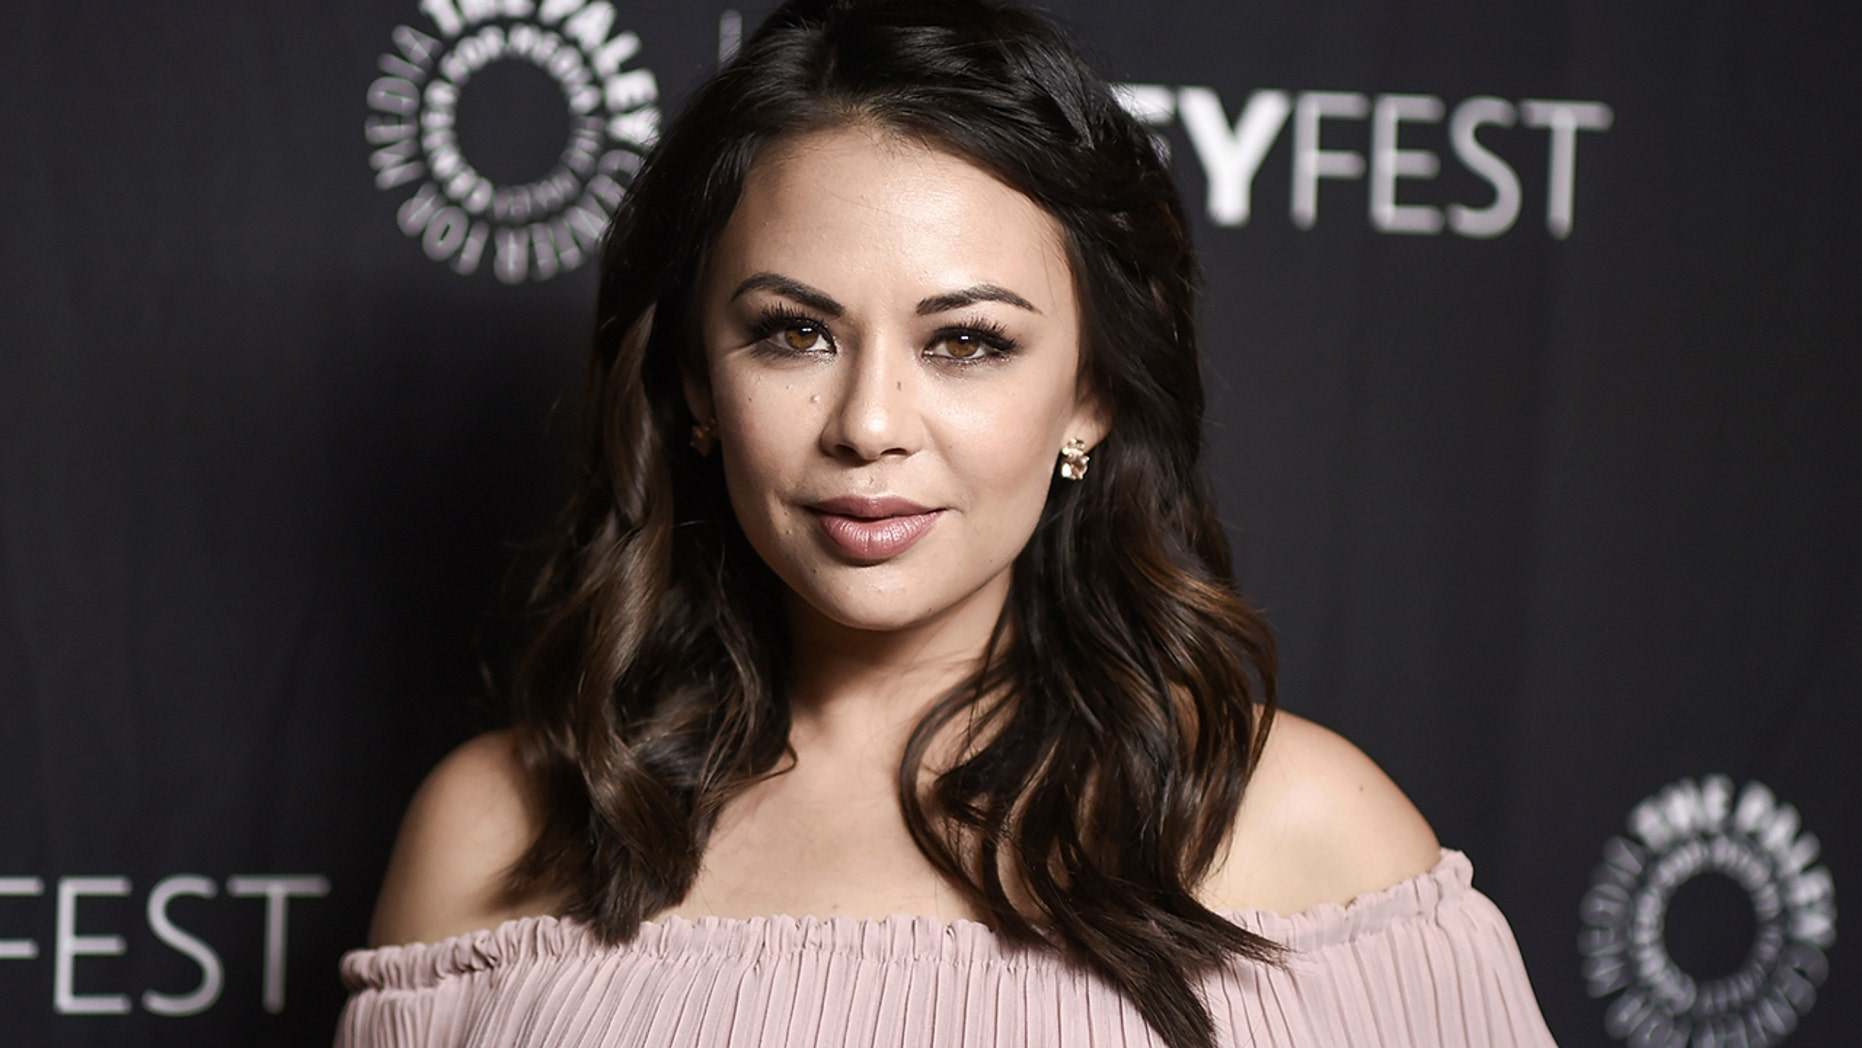 """FILE - In this March 25, 2017, file photo, Janel Parrish attends the 34th annual PaleyFest: """"Pretty Little Liars"""" event at the Dolby Theatre in Los Angeles. Parrish and longtime boyfriend Chris Long have gotten married. The wedding took place Saturday, Sept. 8, 2018, in Hawaii, where she was born. (Photo by Richard Shotwell/Invision/AP, File)"""